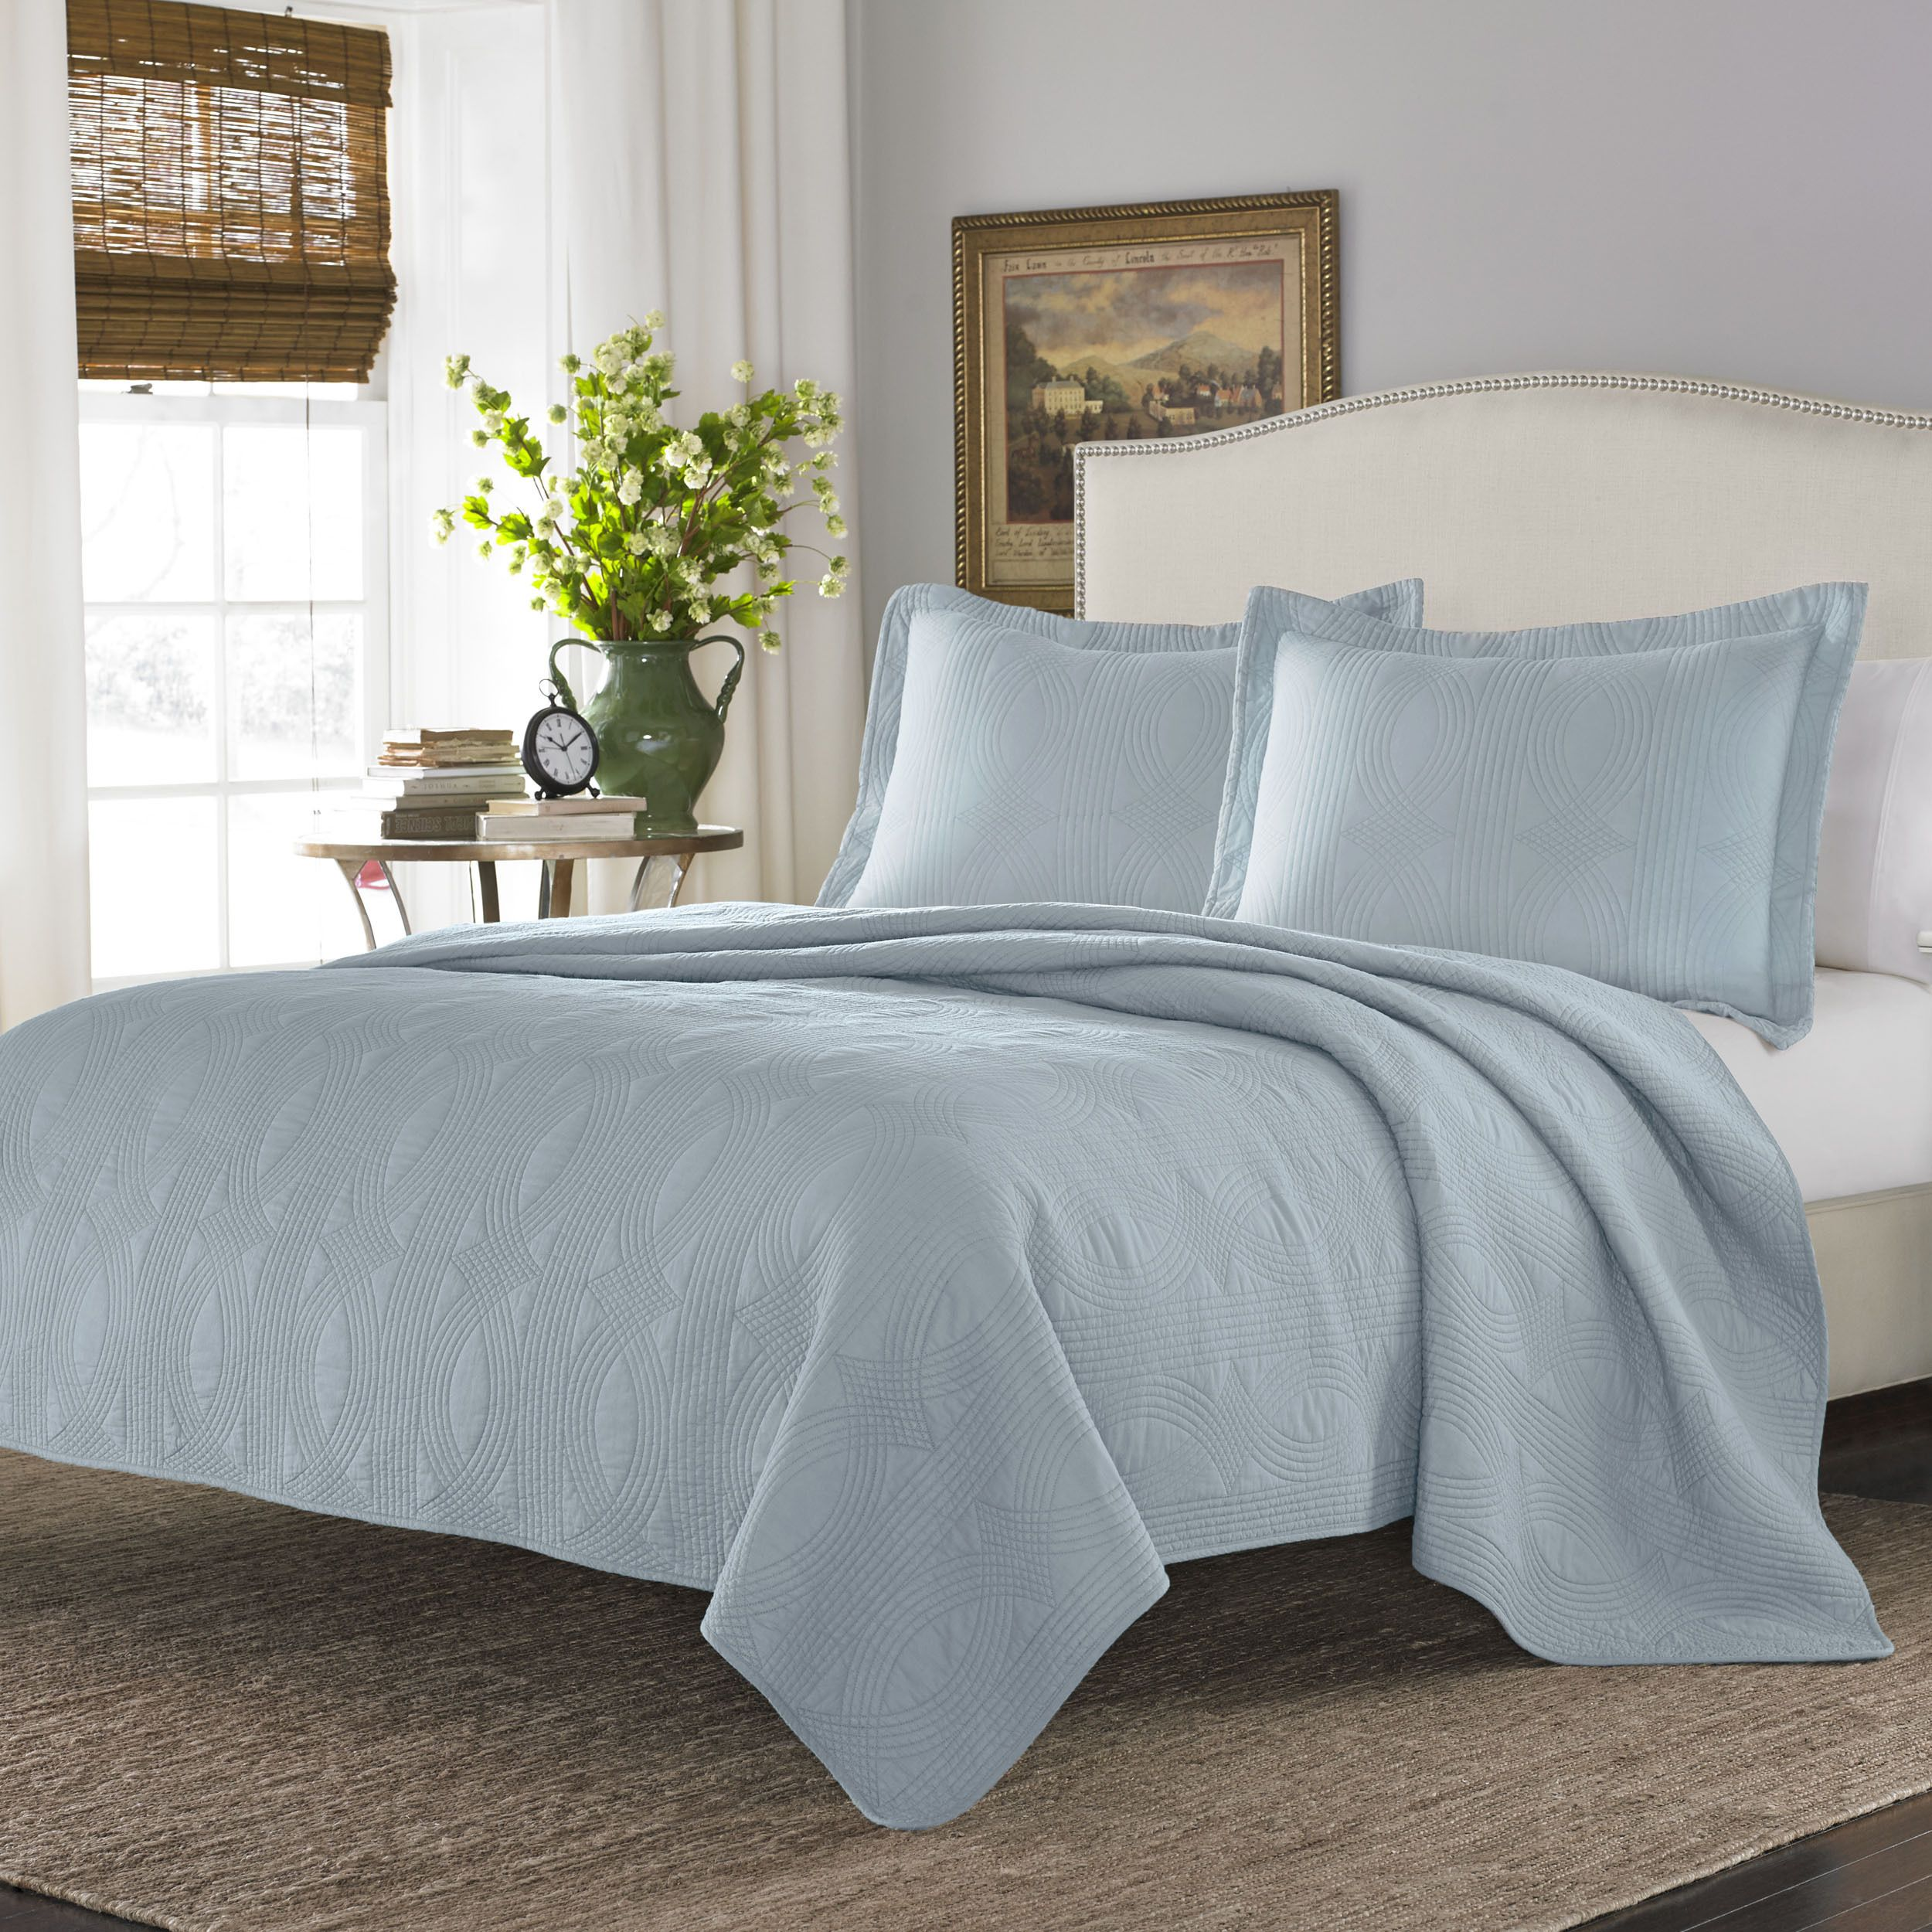 sheridan blue light quilt set mardella cover